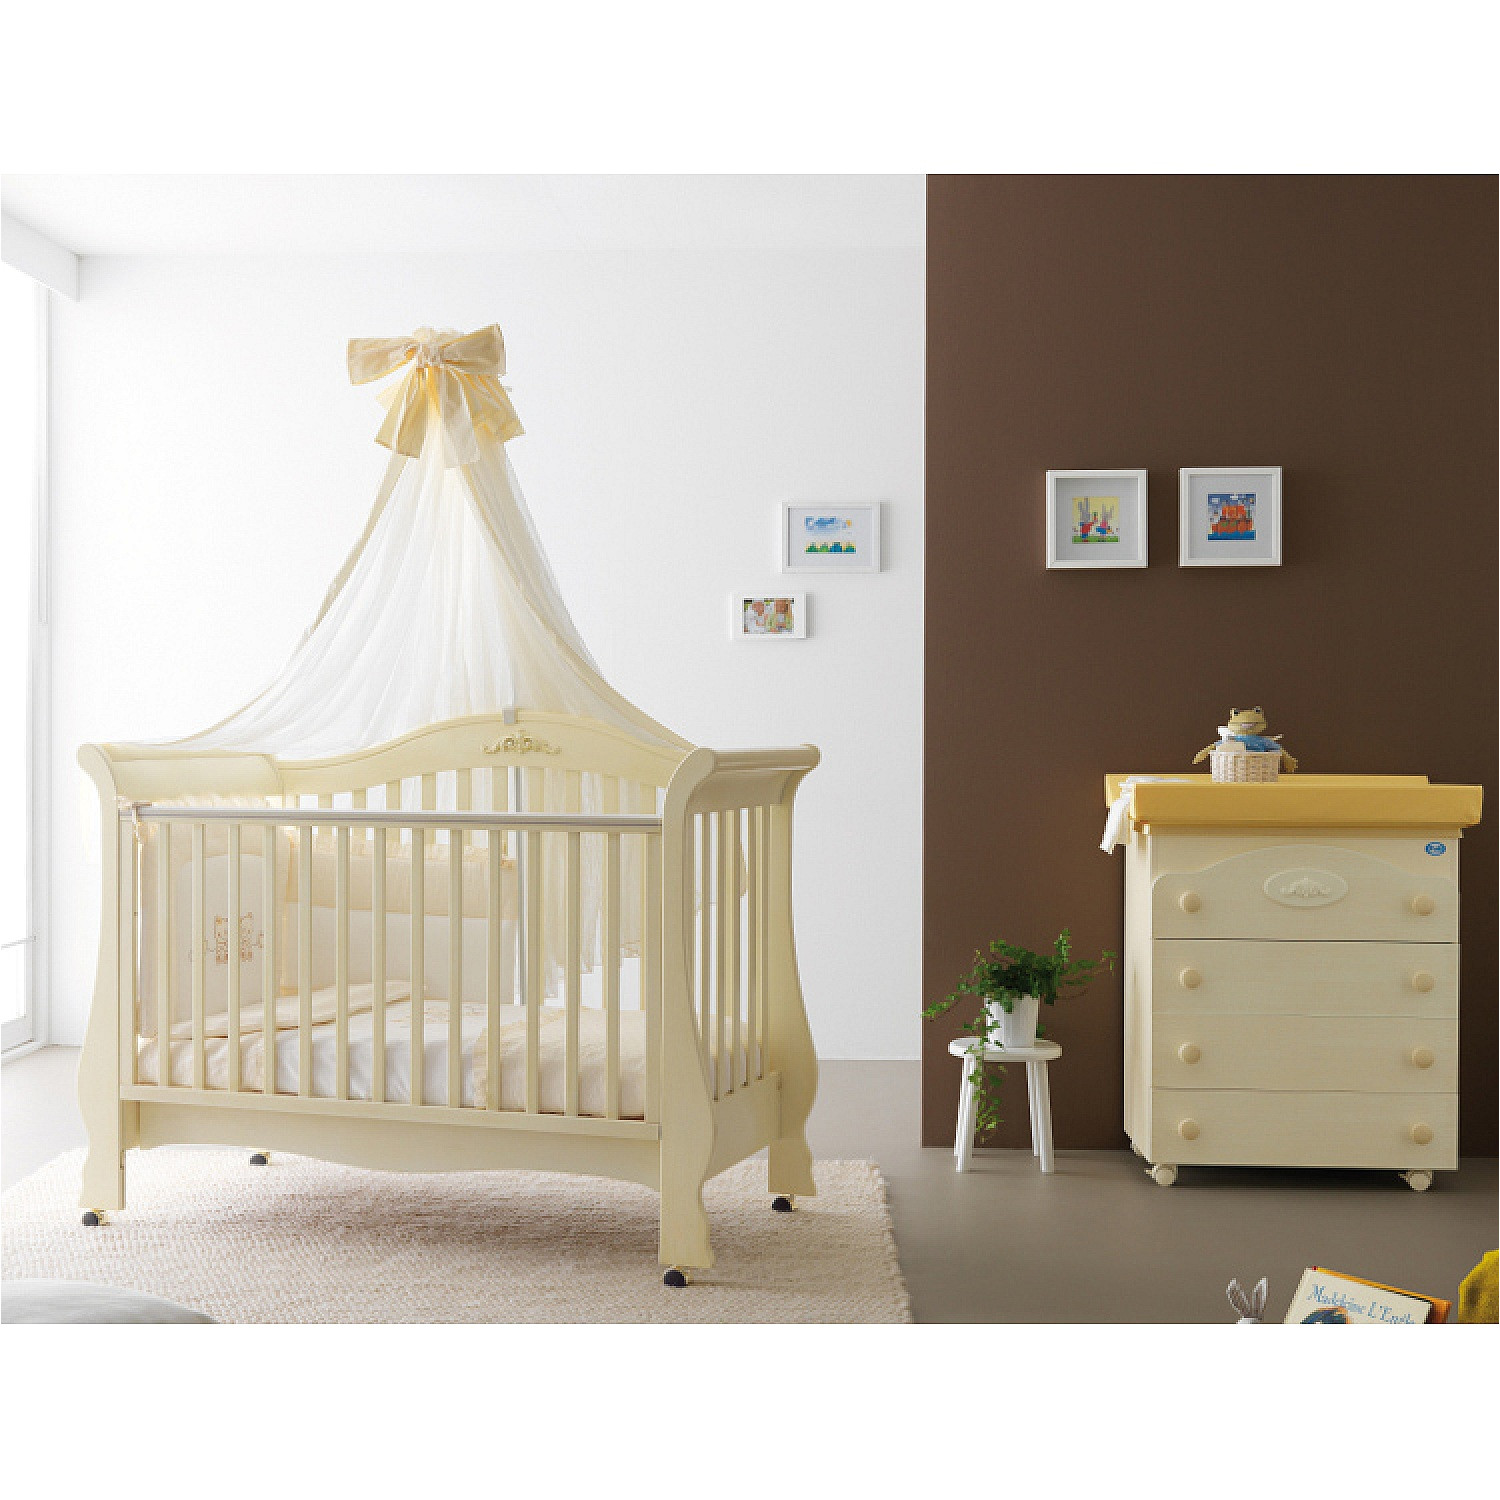 classic traditional design baby cot sofa renee is produced by pali high end italian